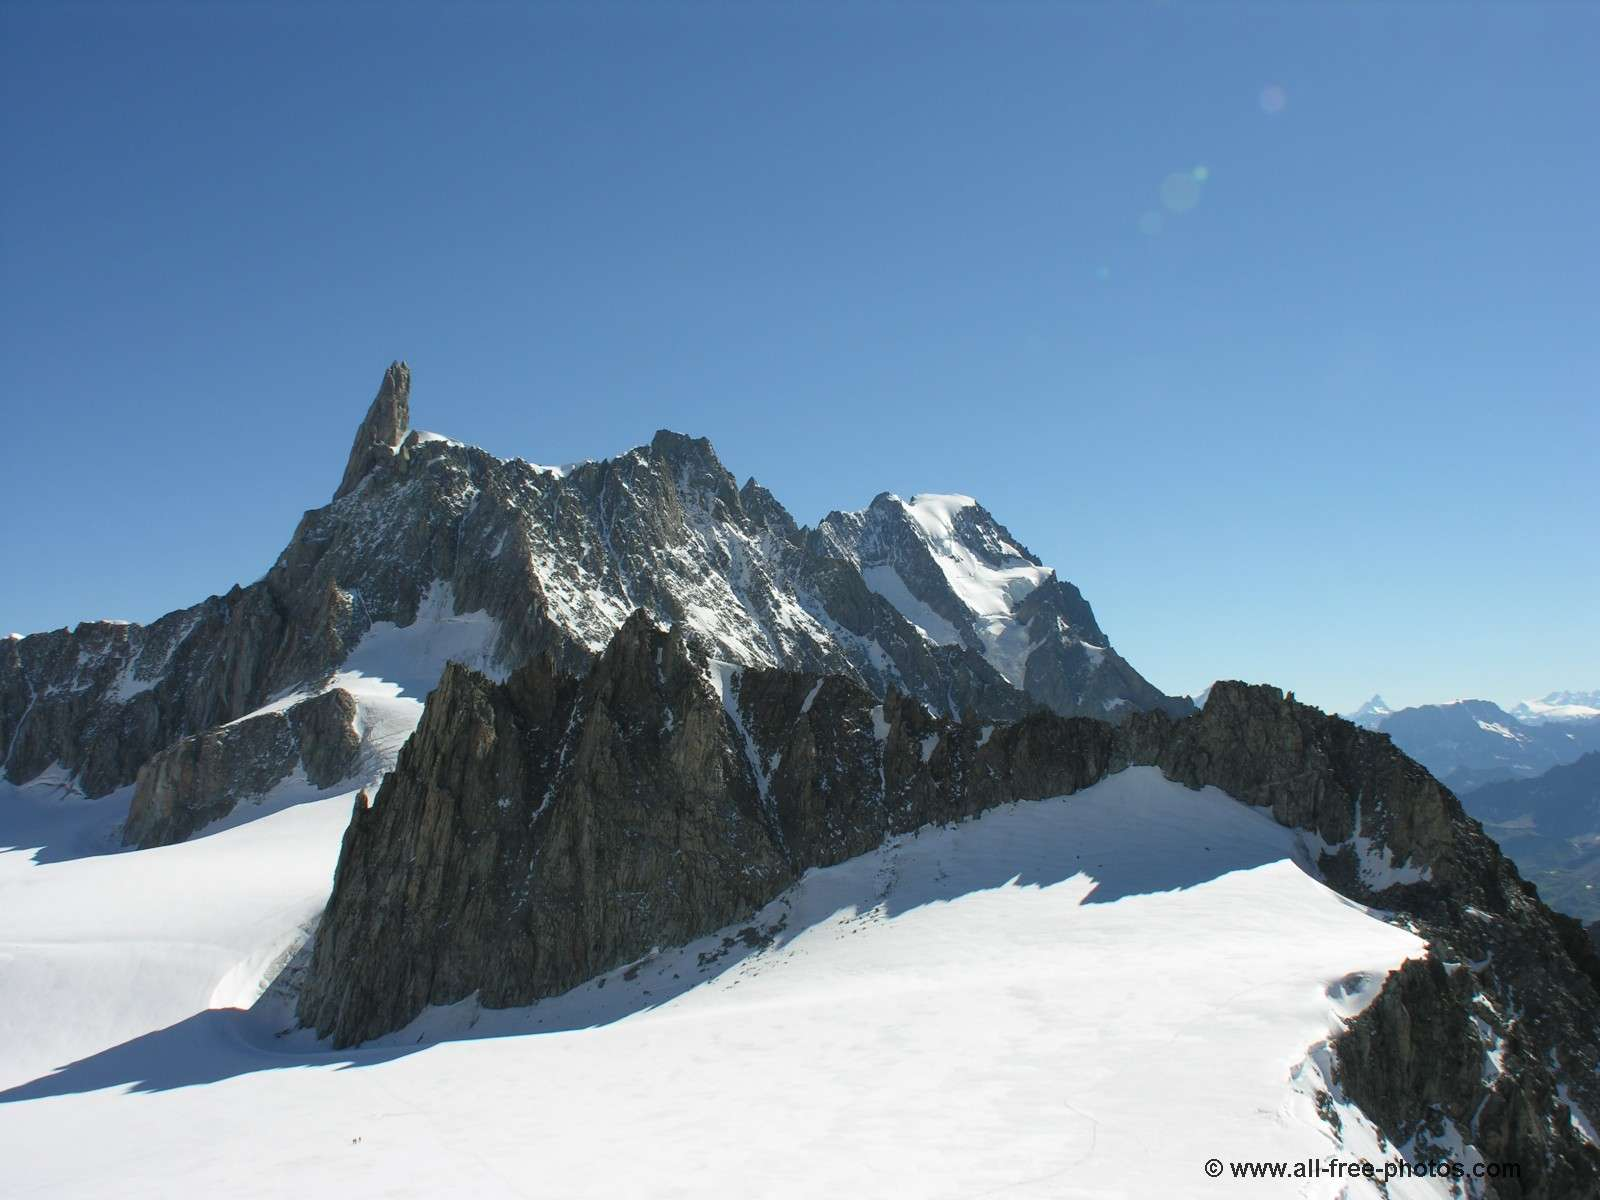 The Tooth of the Giant - Chamonix - France